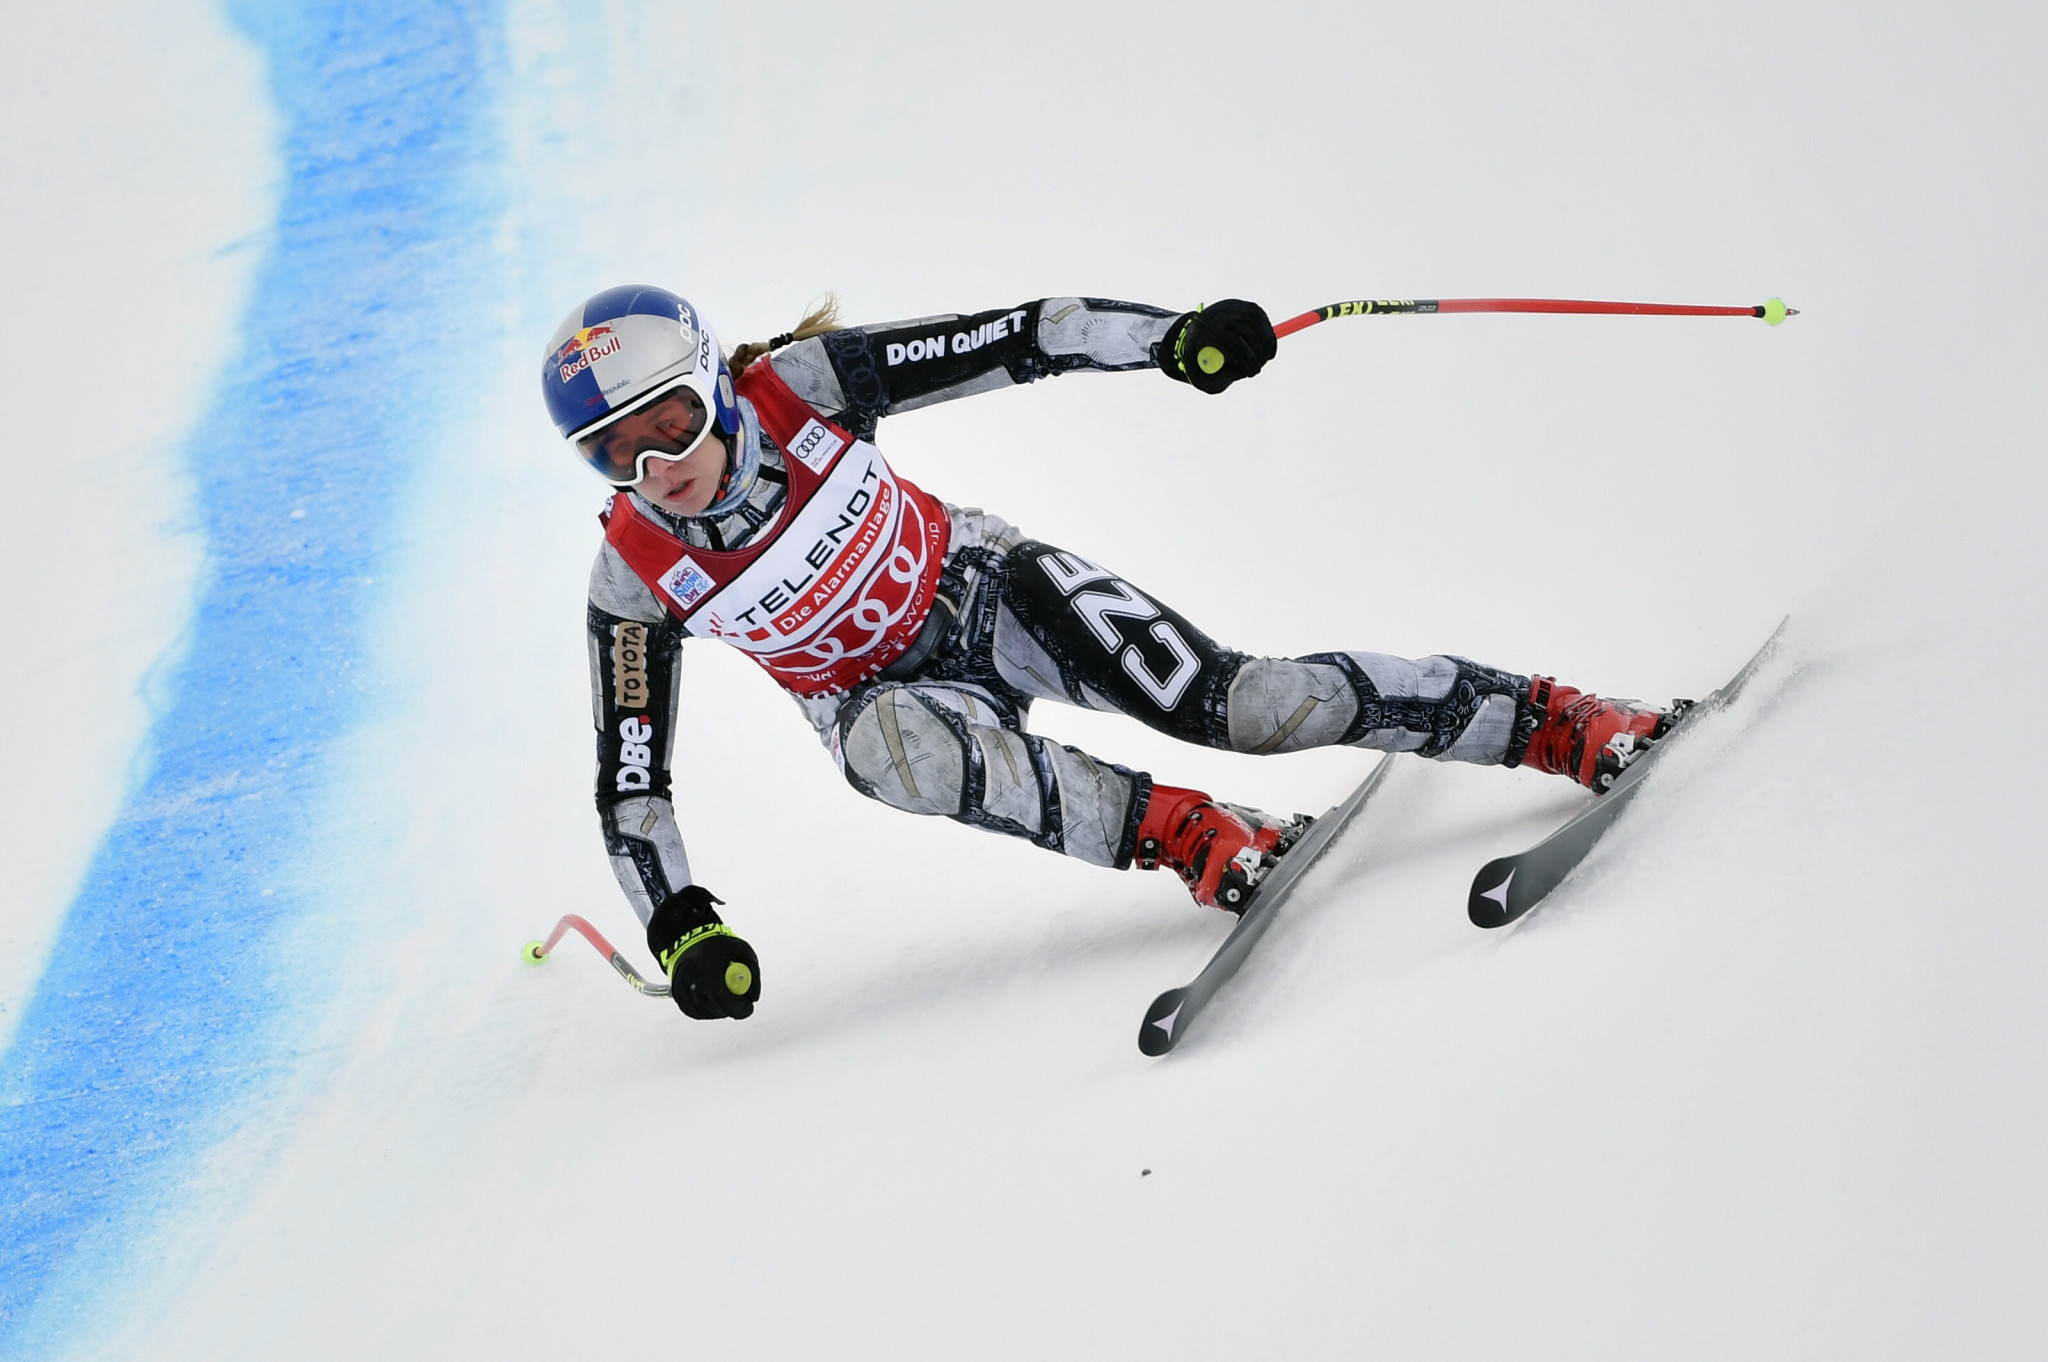 Ledecká in fine downhill shape, as Vlhova plans for Alpine Combined at FIS World Cup